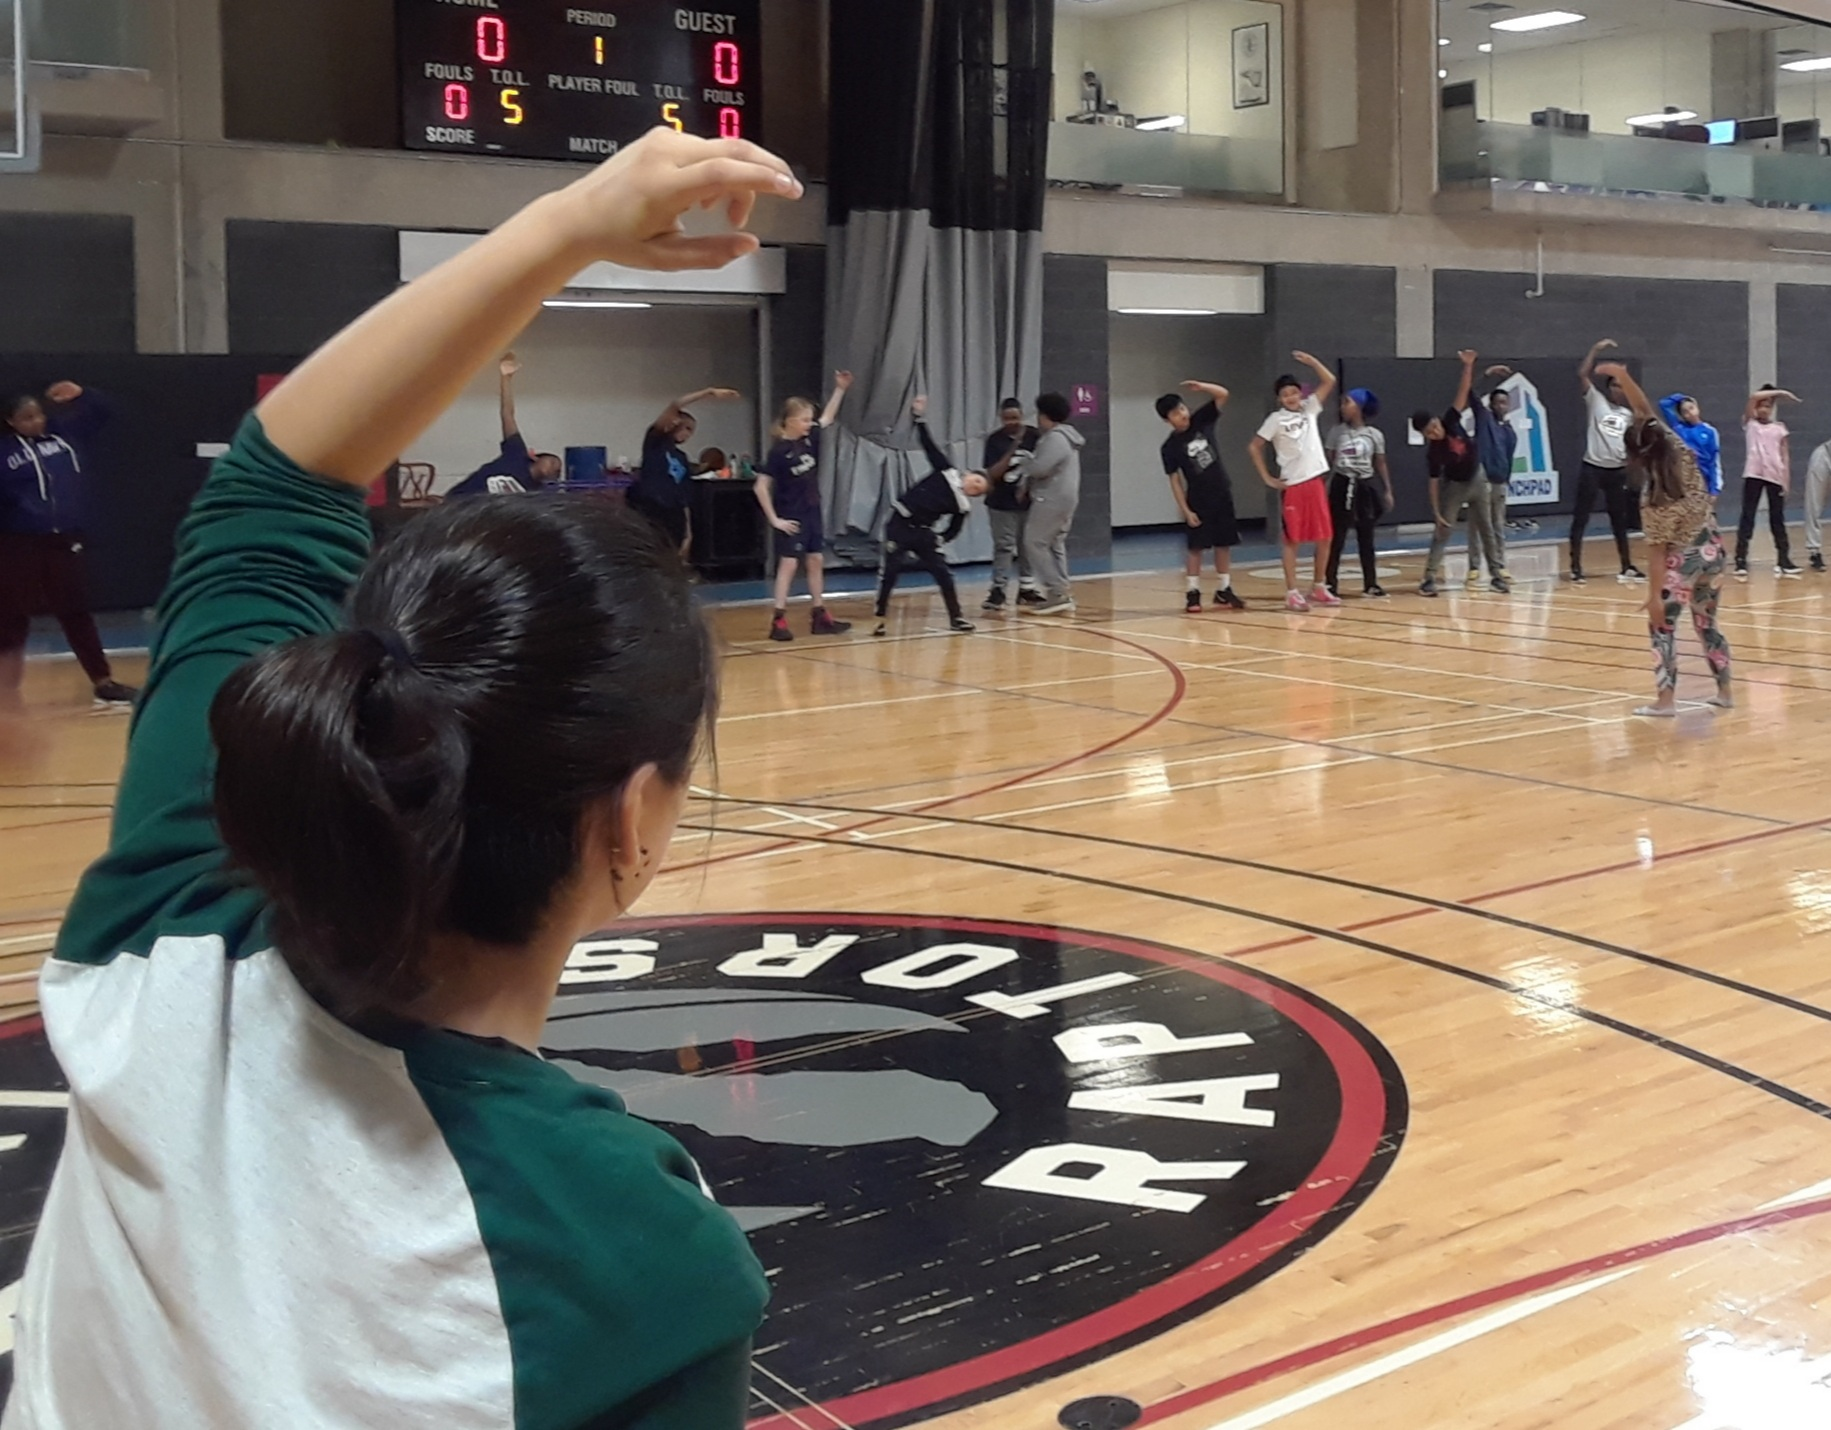 stretching with the kids after the Latin HipHop Dance class @ the MLSE Launchpad